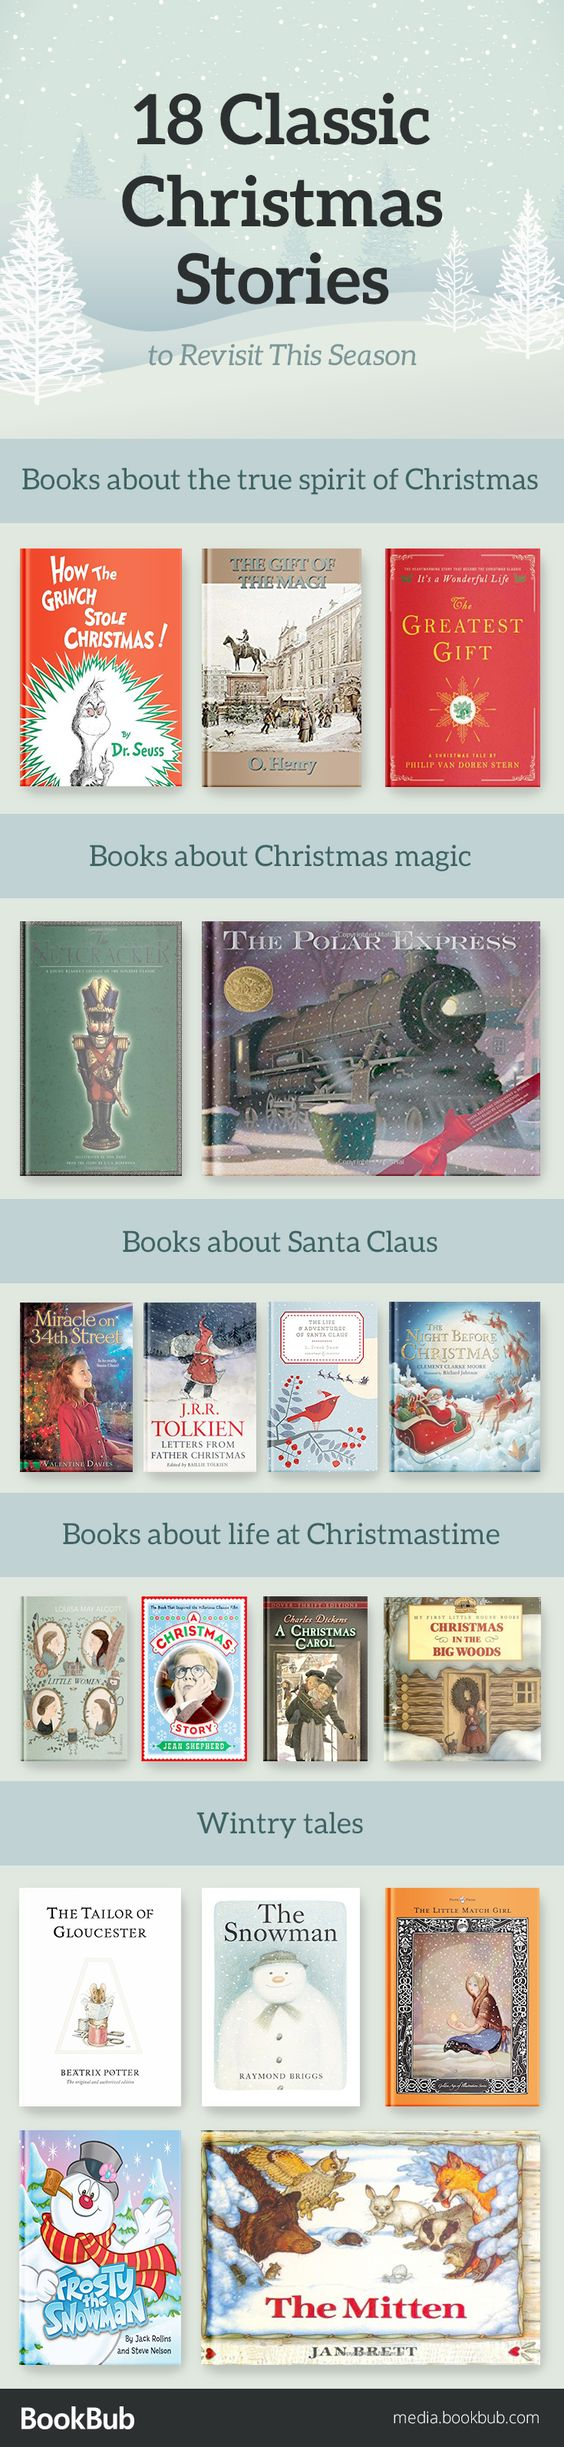 18 Classic Christmas Stories to Revisit This Season